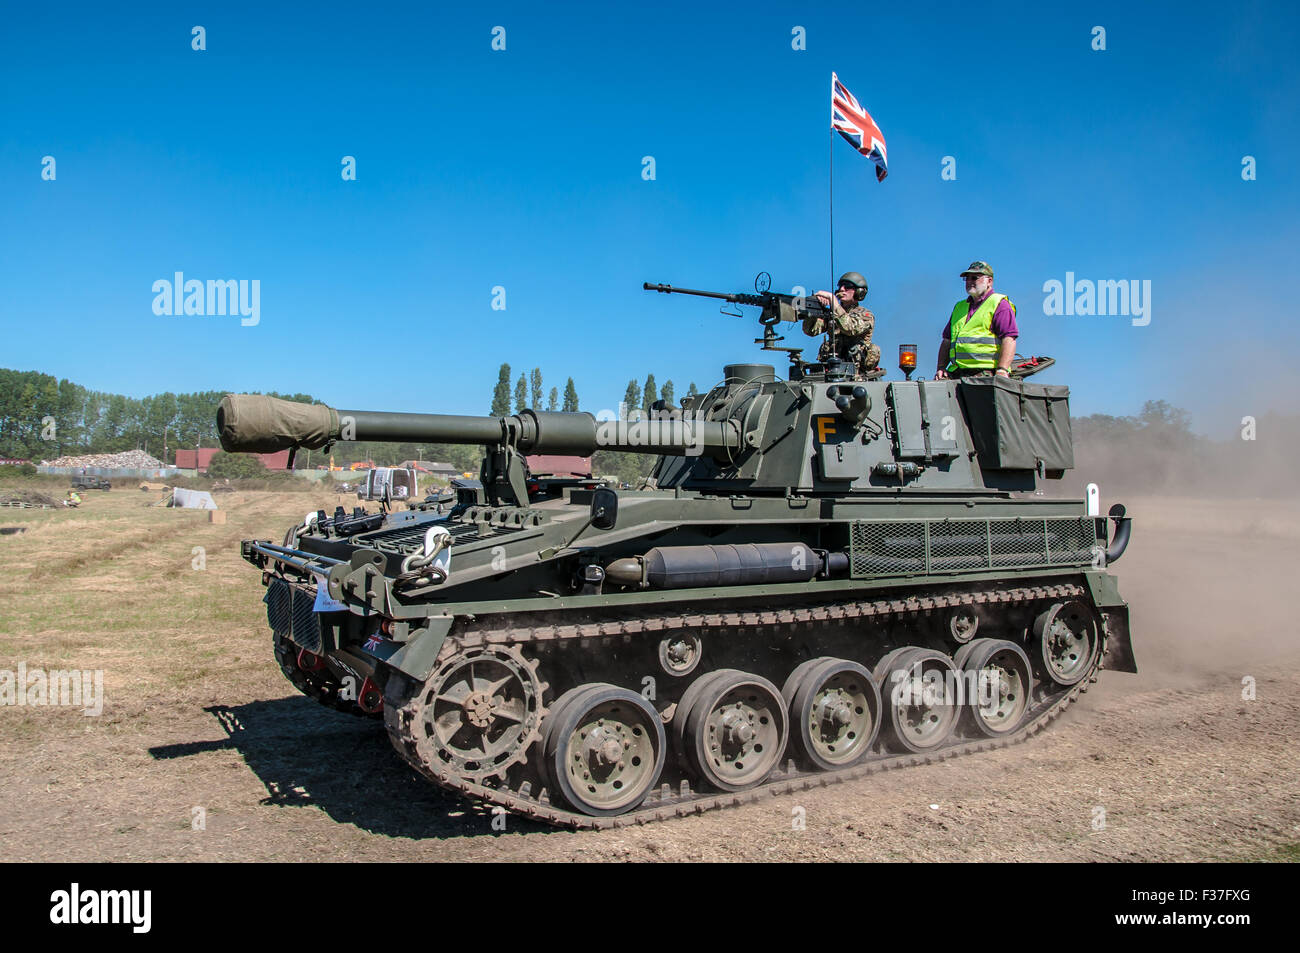 Vickers Abbot self propelled gun. An ex-military vehicle in private hands being put through its paces for the public - Stock Image